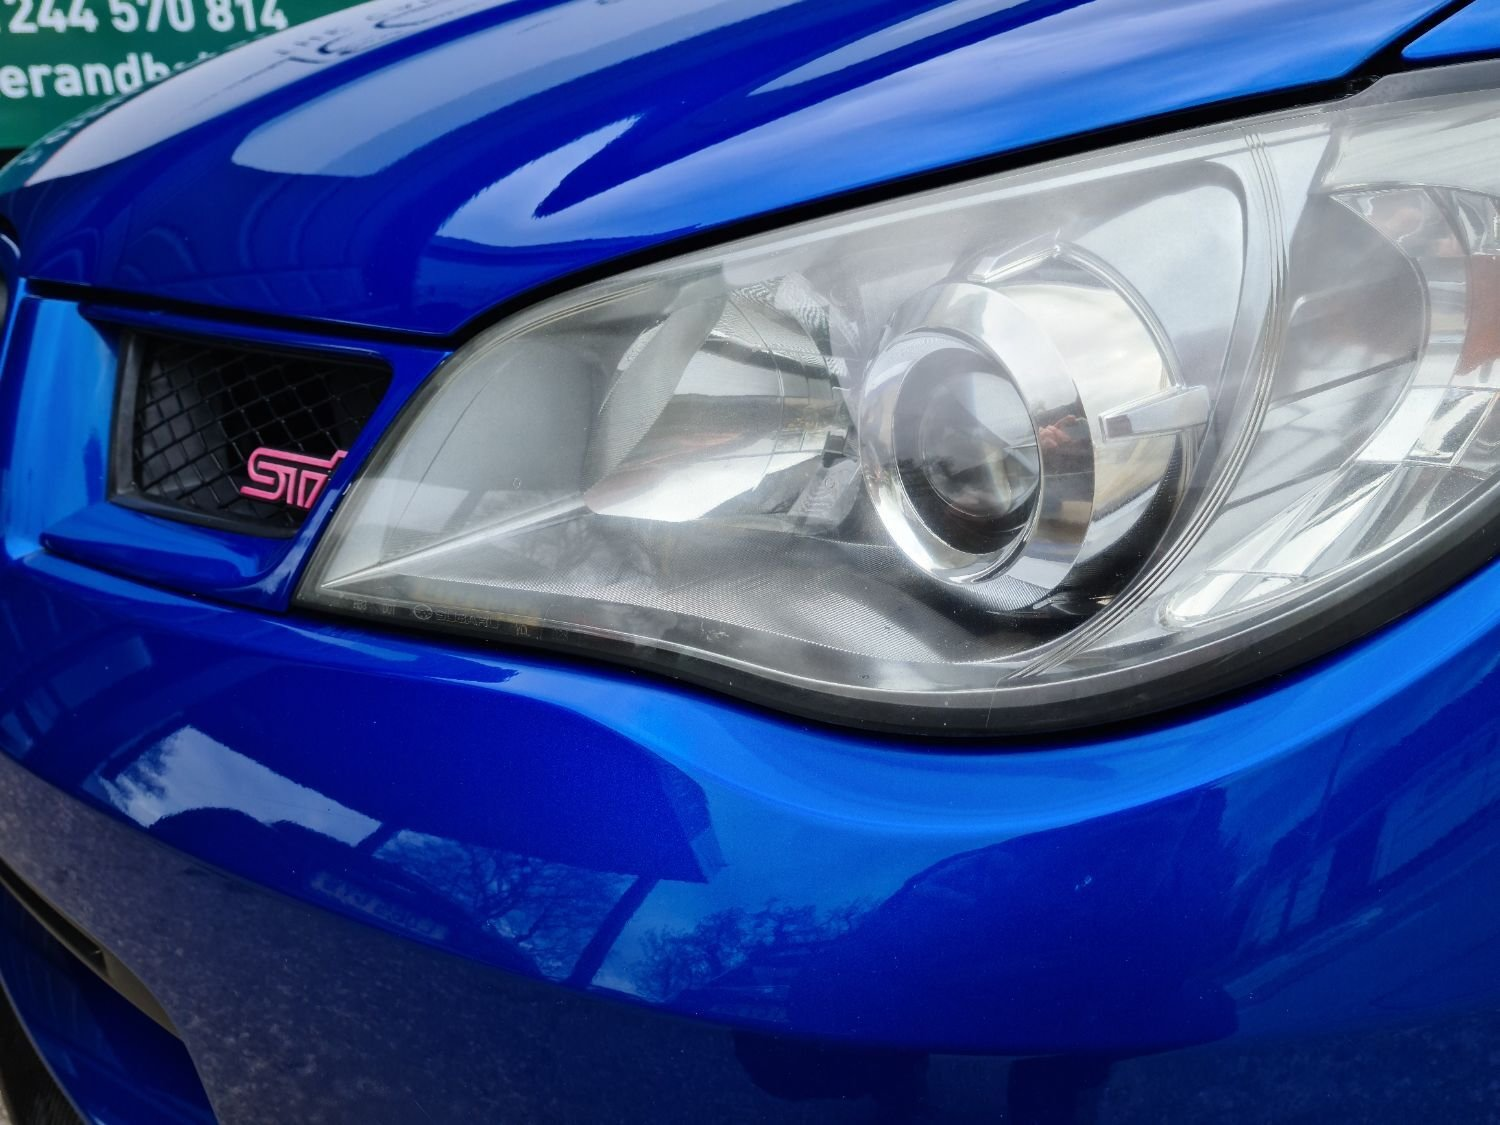 IMPREZA WRX STI (2006/55) Low Tax Band 368 BHP For Sale (picture 13 of 23)